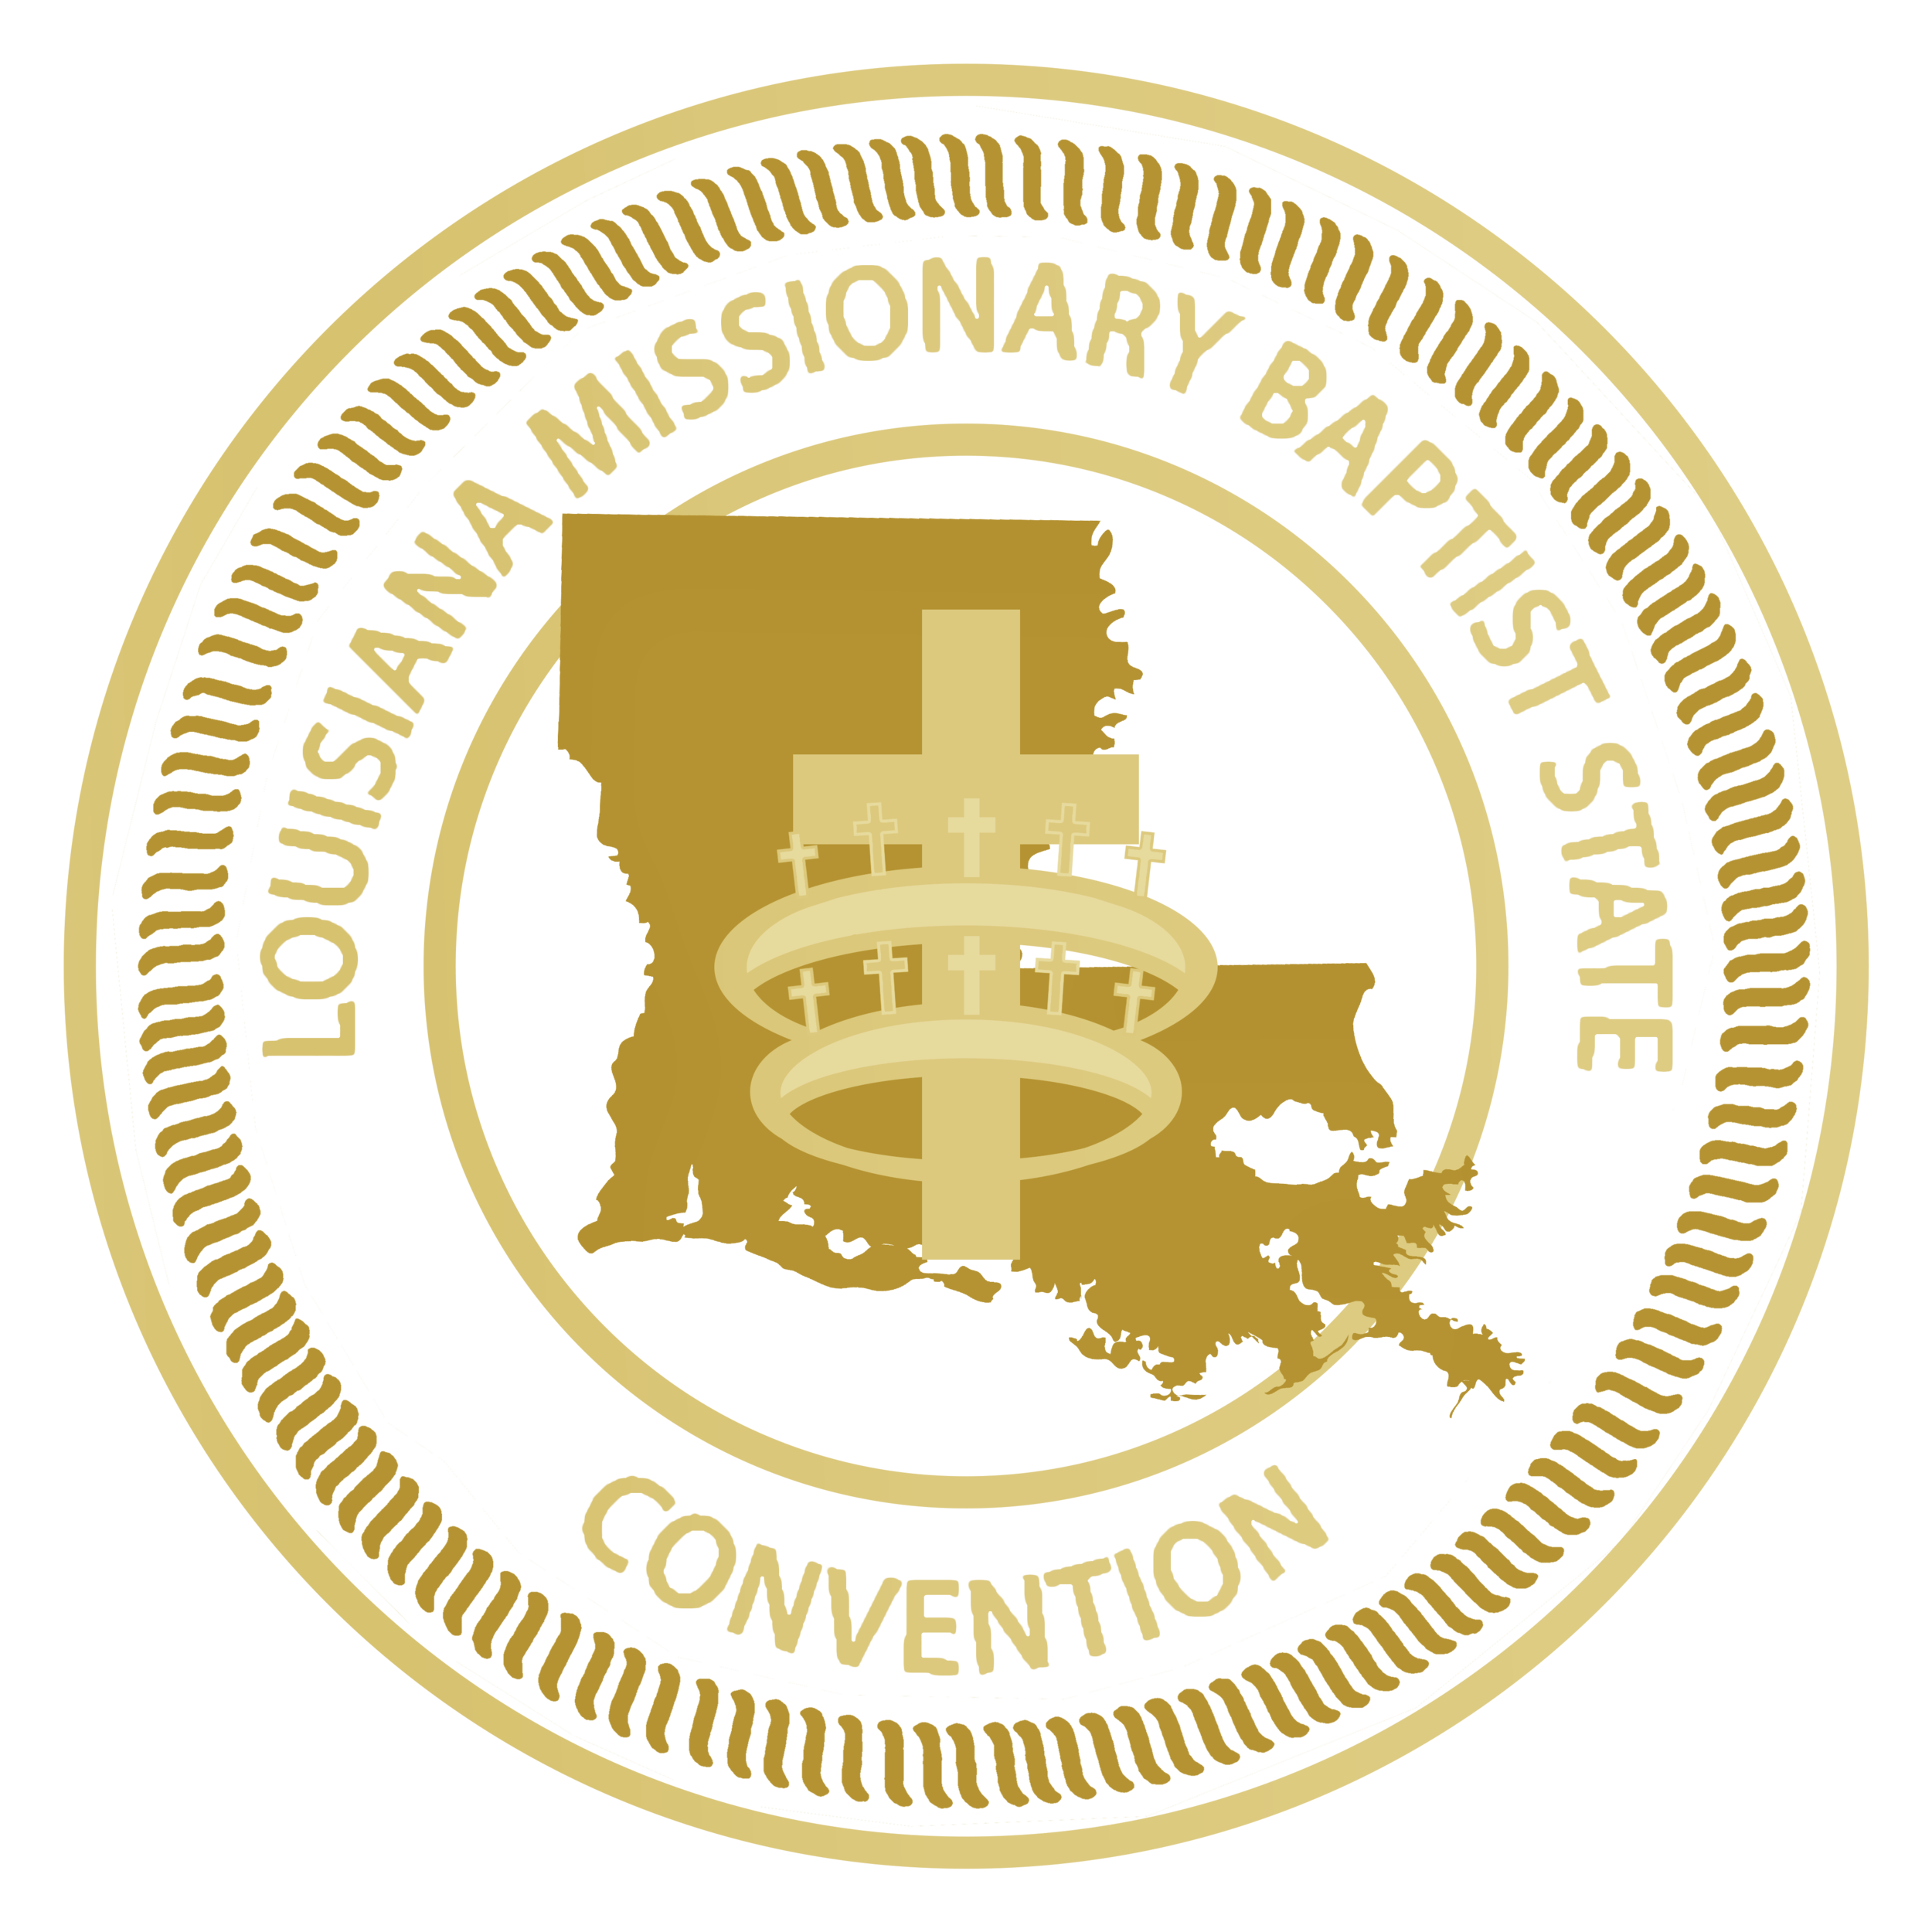 Louisiana Missionary Baptist State Convention